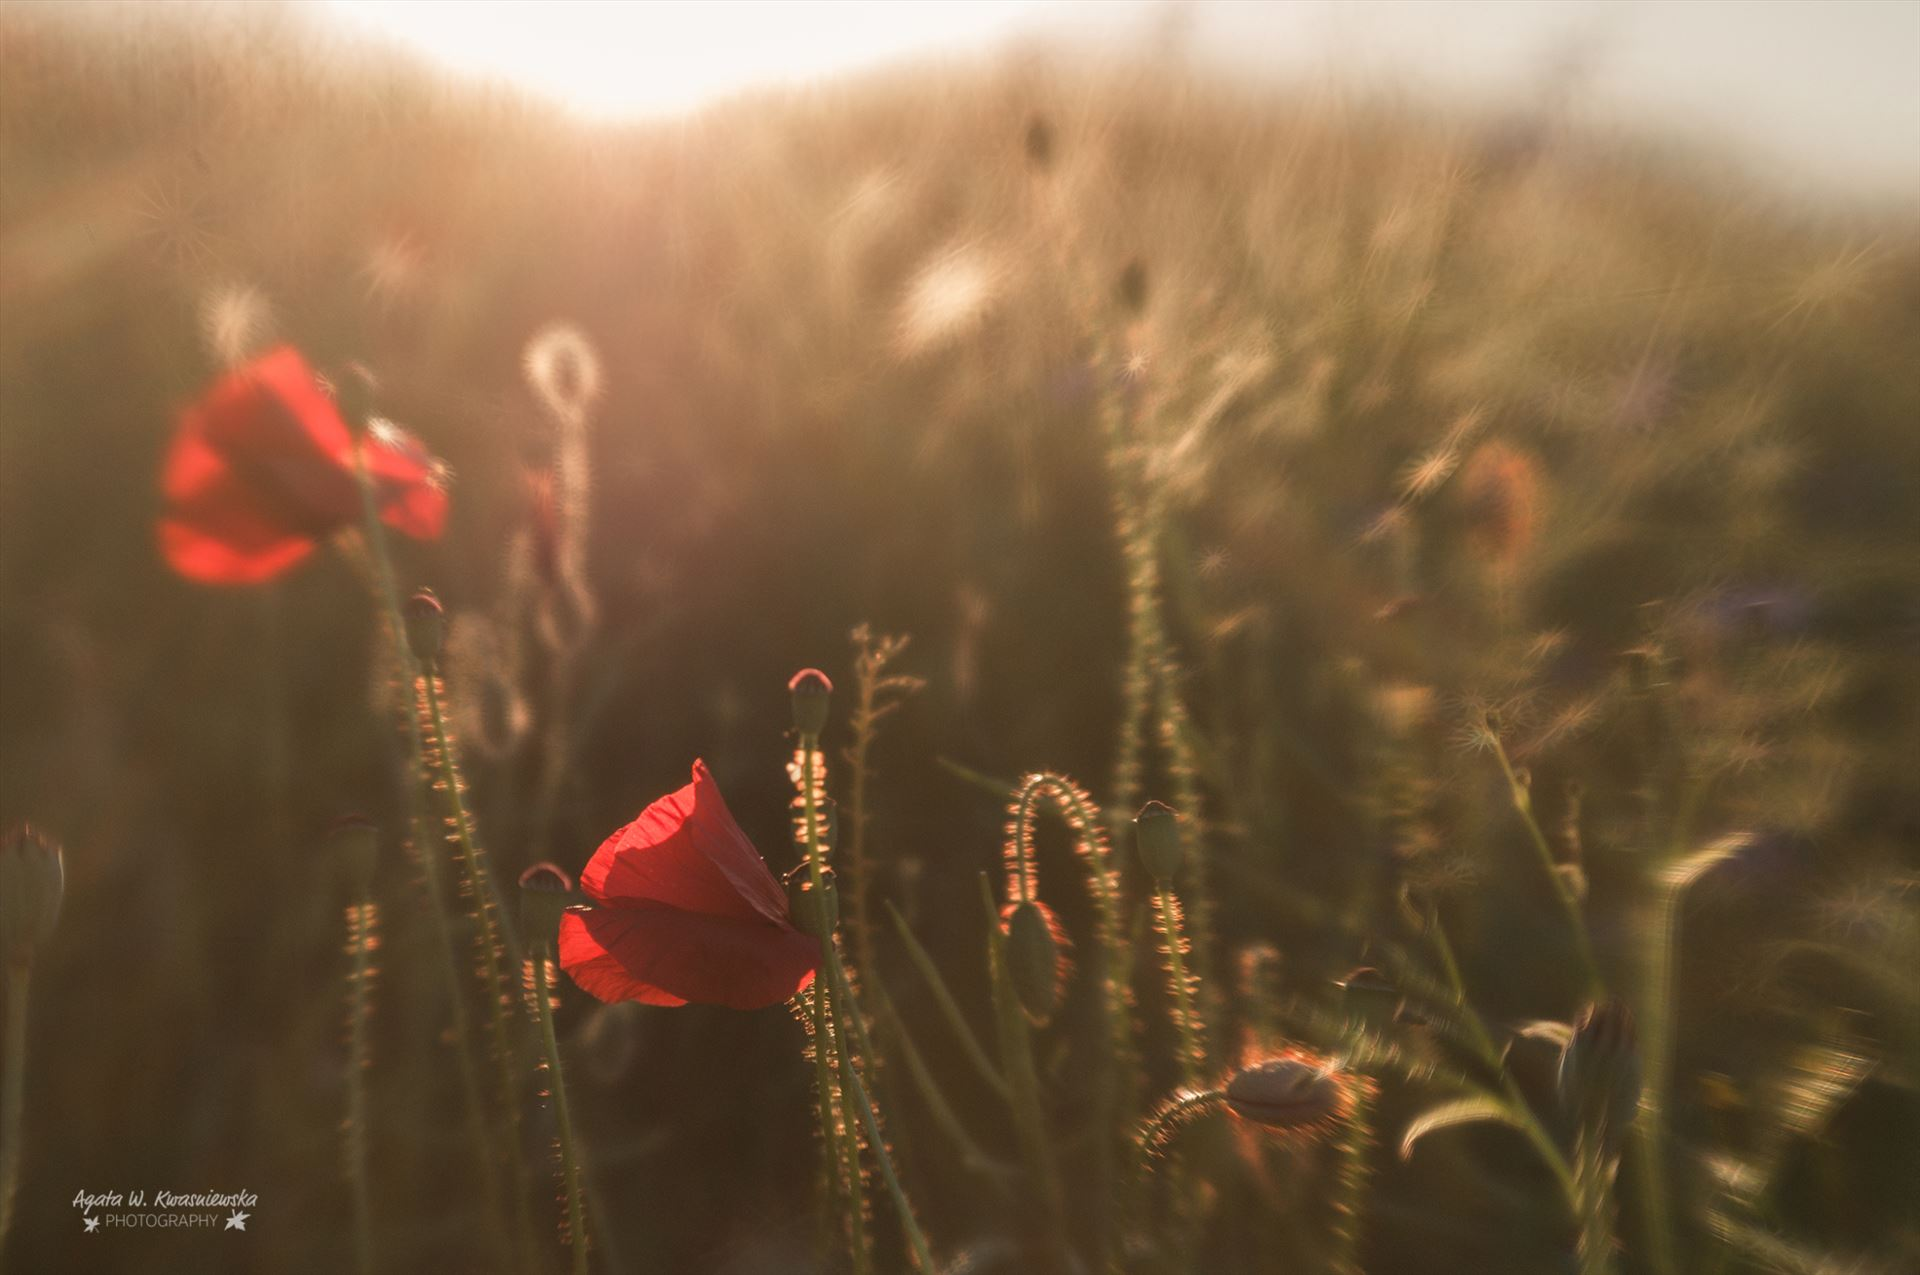 Poppies -  by Agata W. Kwasniewska Photography